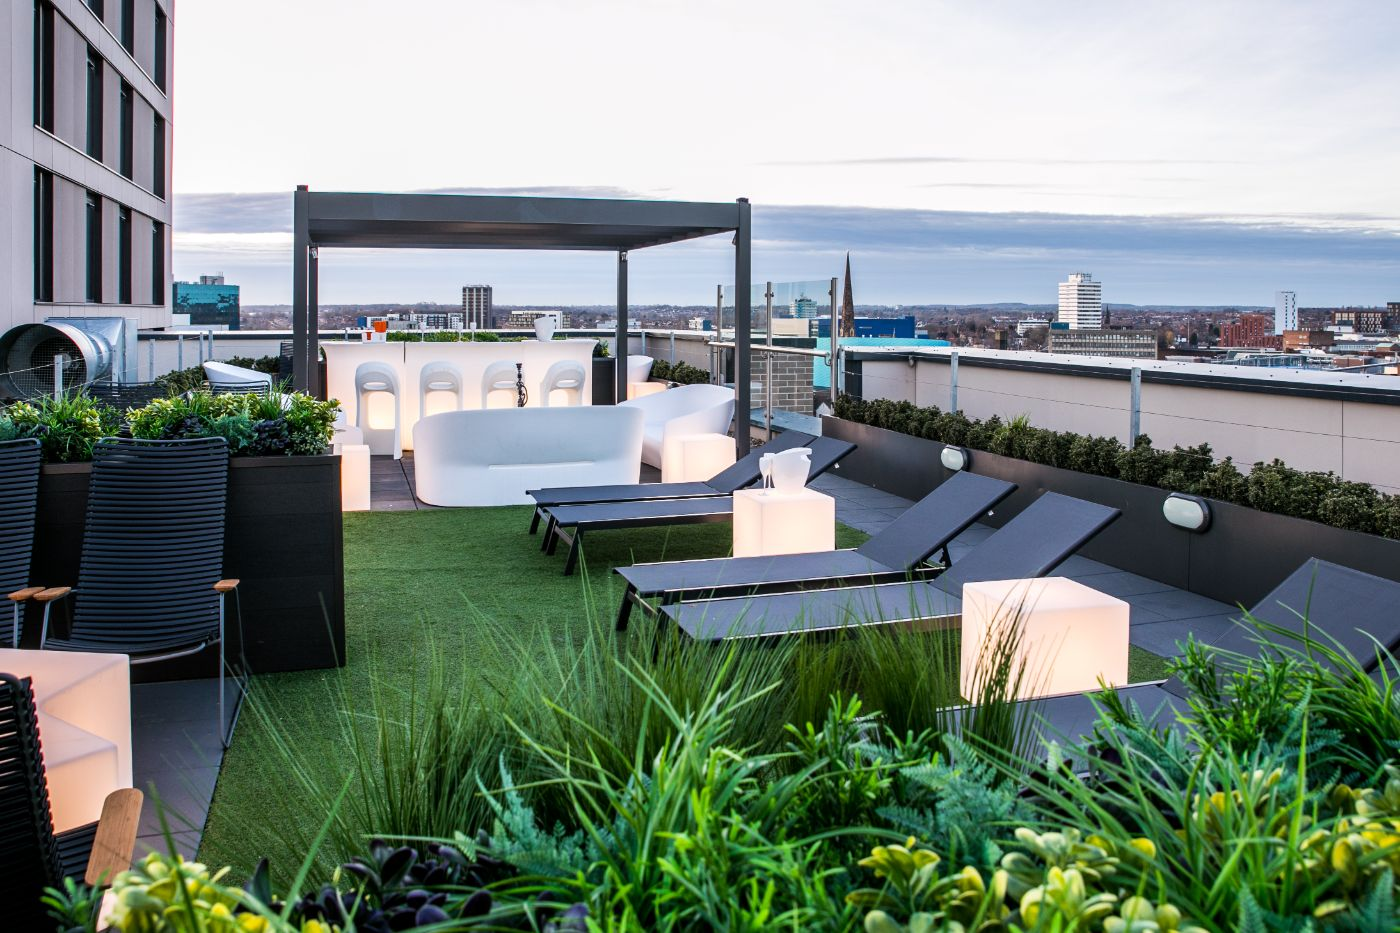 33 Parkside student accommodation roof terrace 2